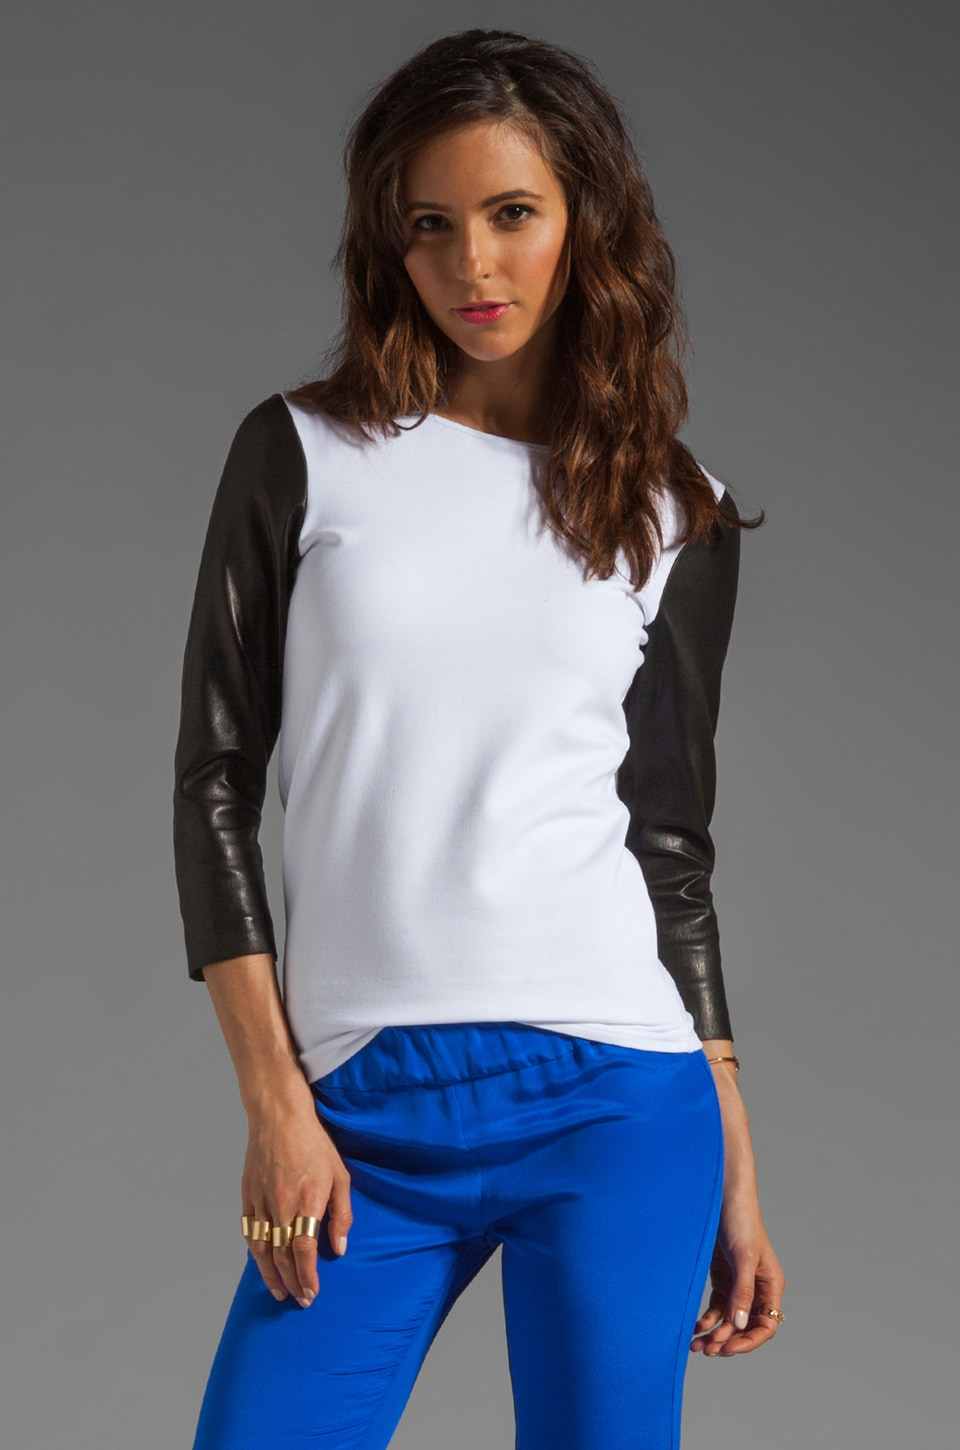 MAX FOWLES Leather Sleeve Tee in White/Black